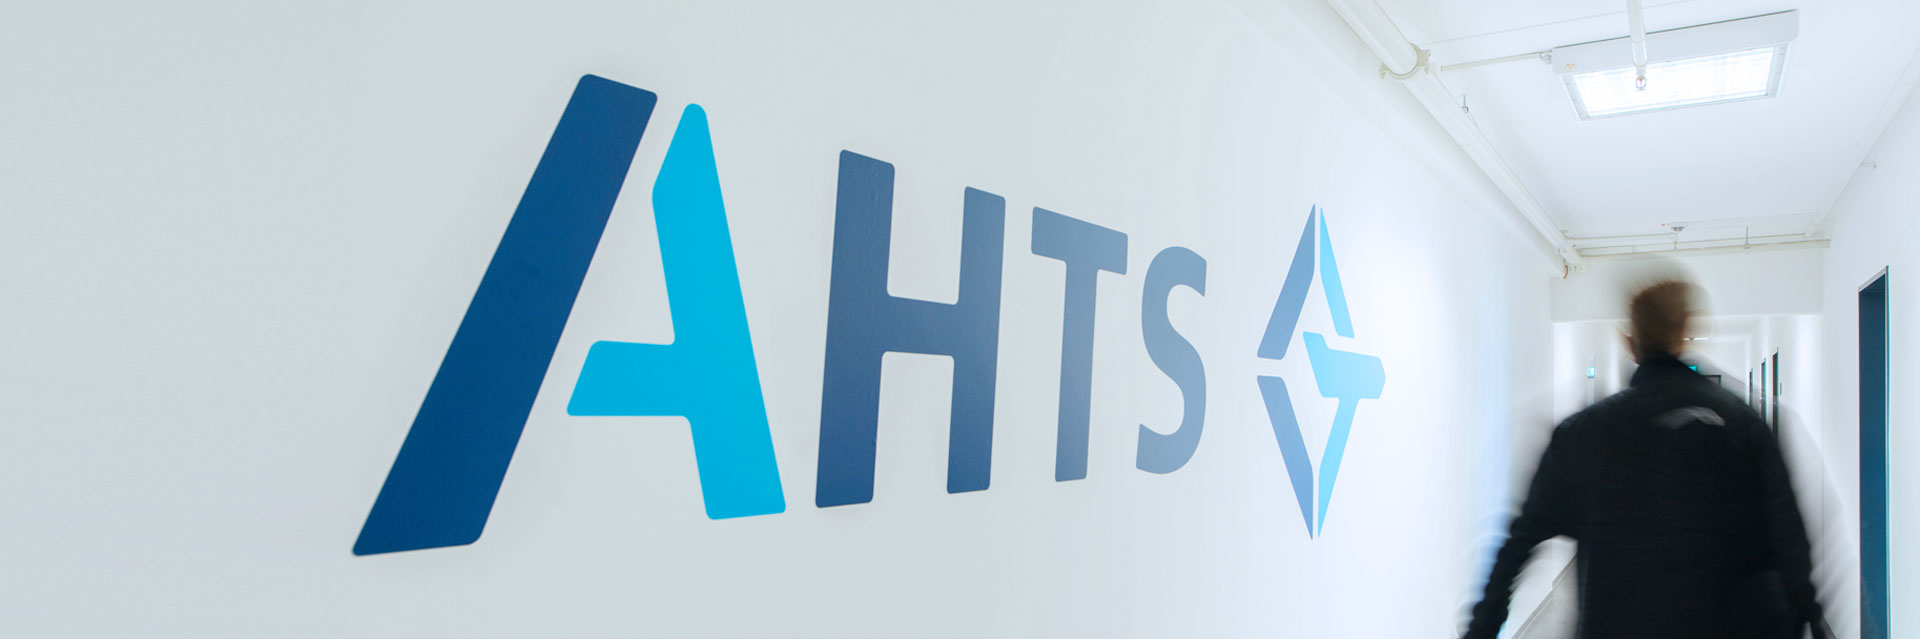 1e129659f52 Your satisfaction is the measure of our success - AHTS GmbH - Munich ...